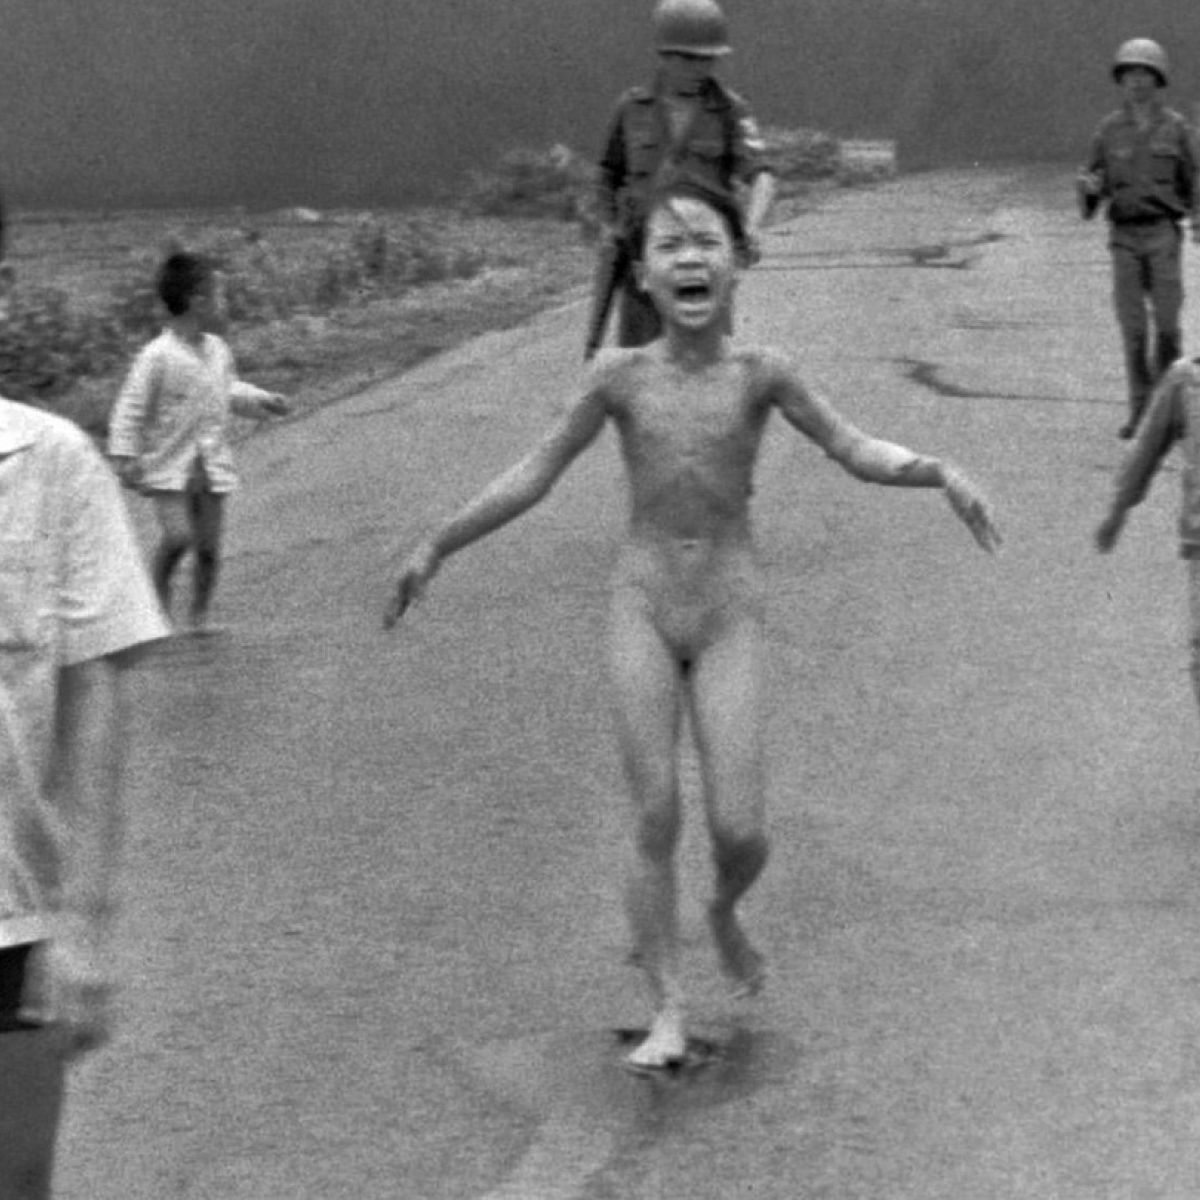 famous war pic with naked girl